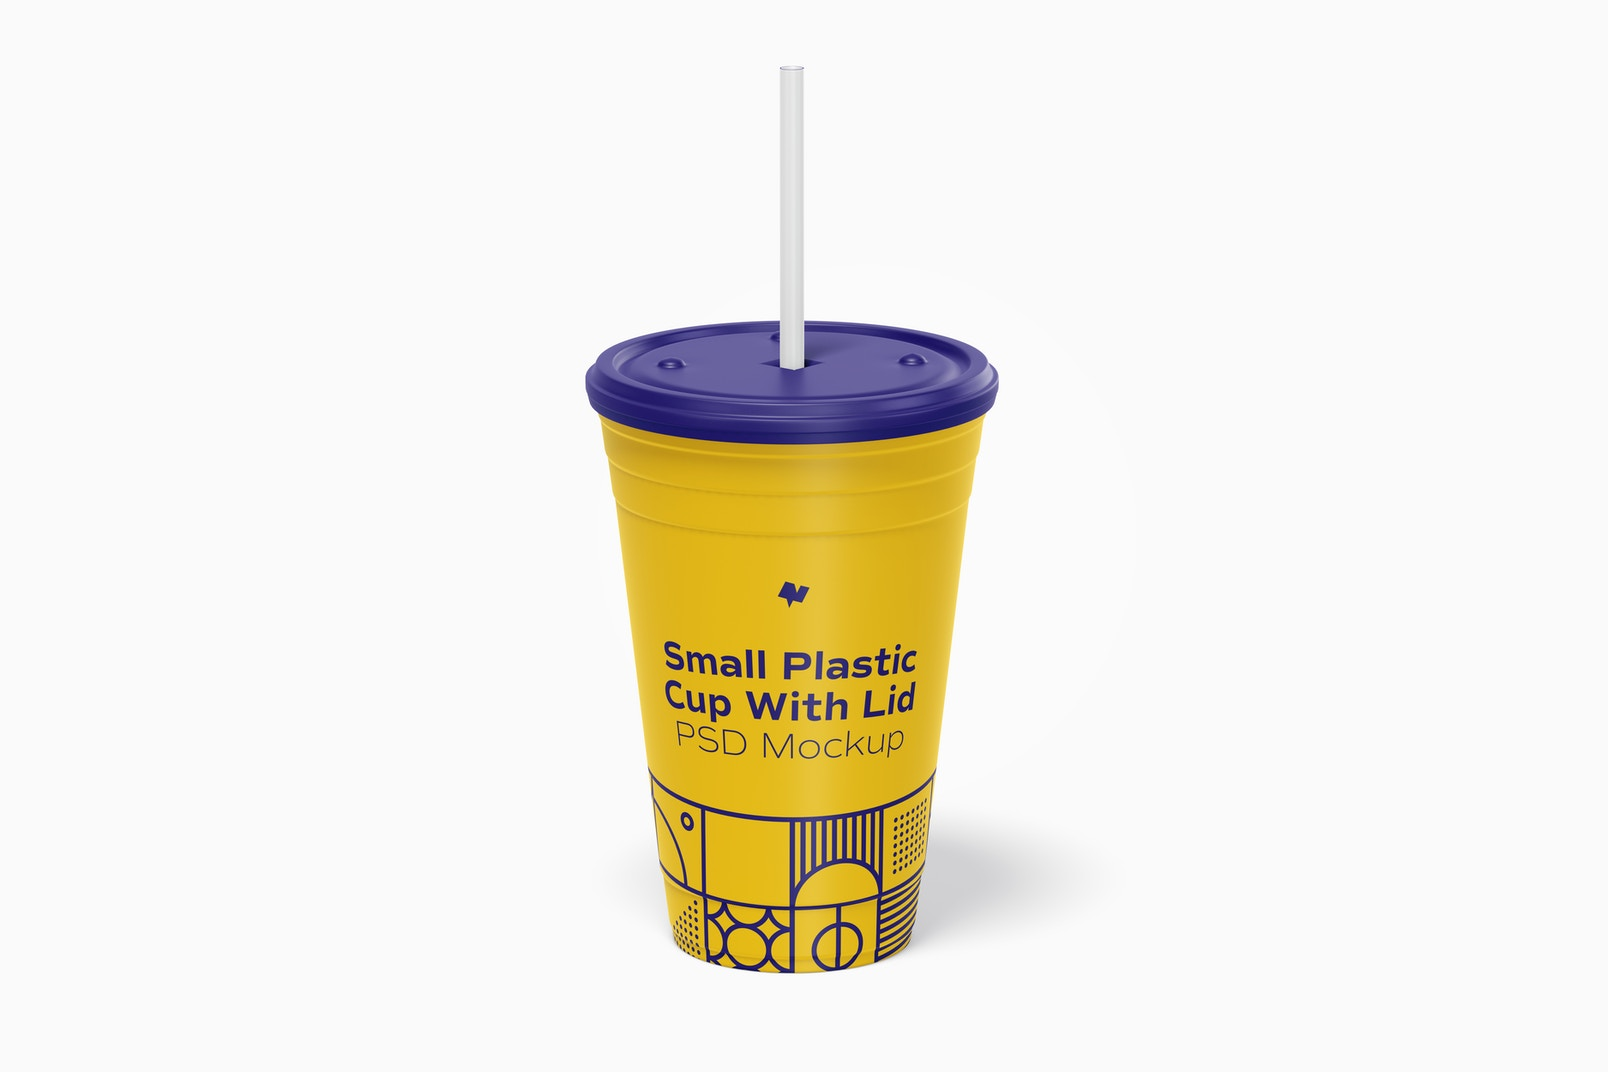 Small Plastic Cup with Lid Mockup, Front View